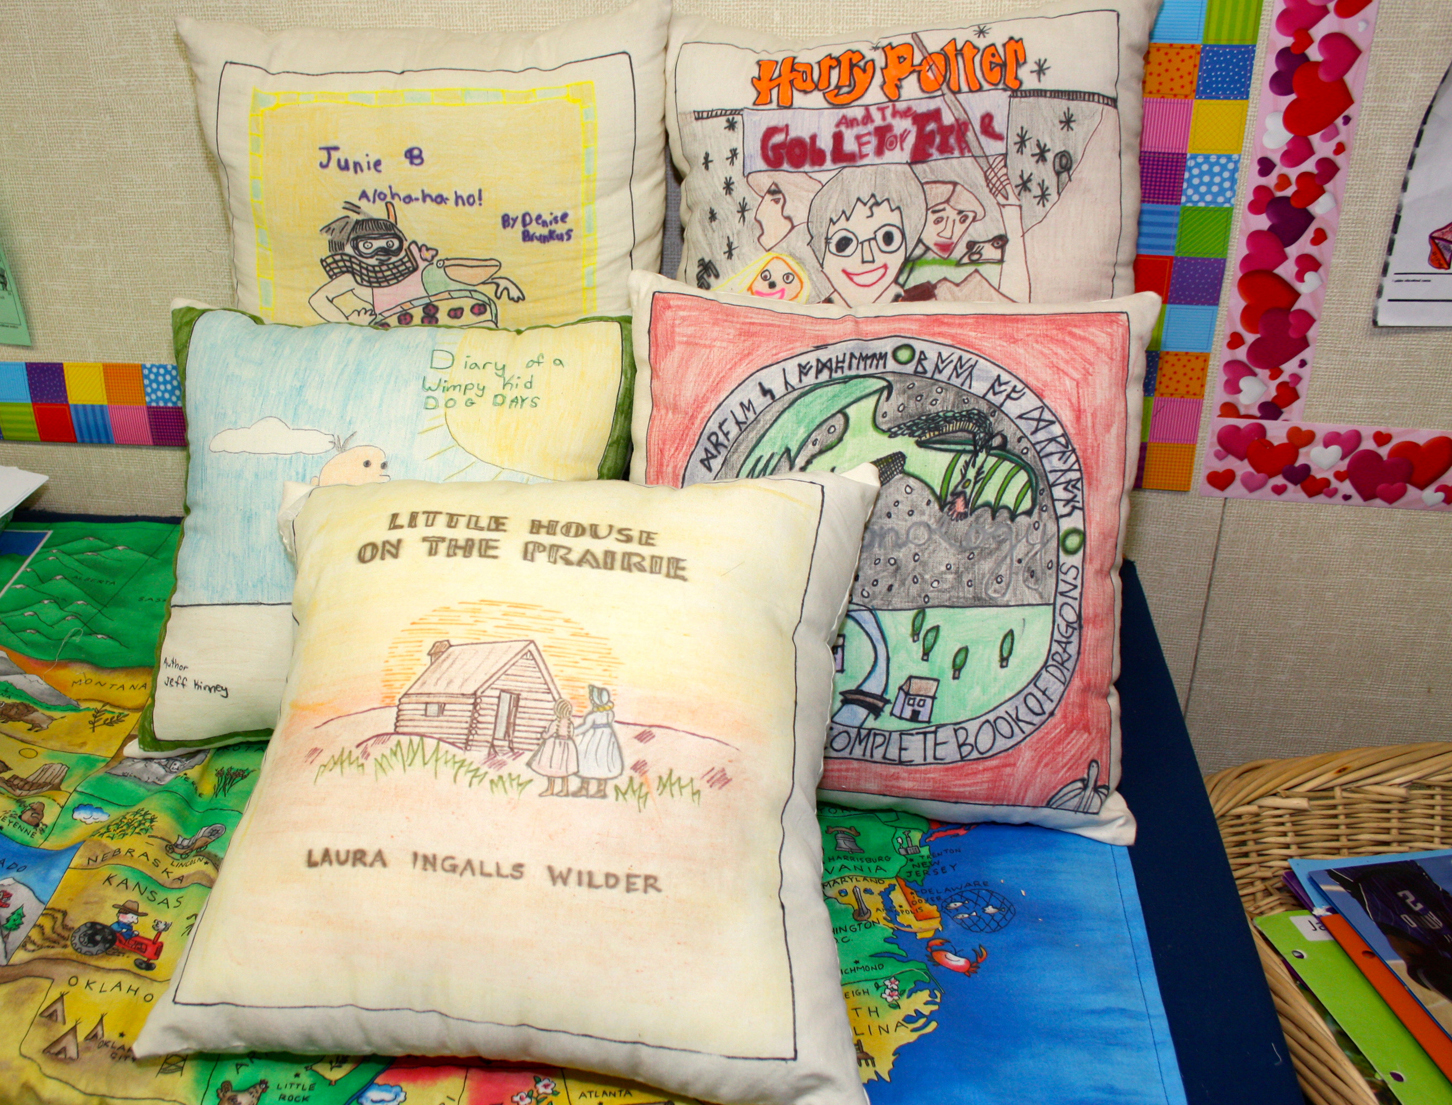 Celebrating our love of reading with book pillows!